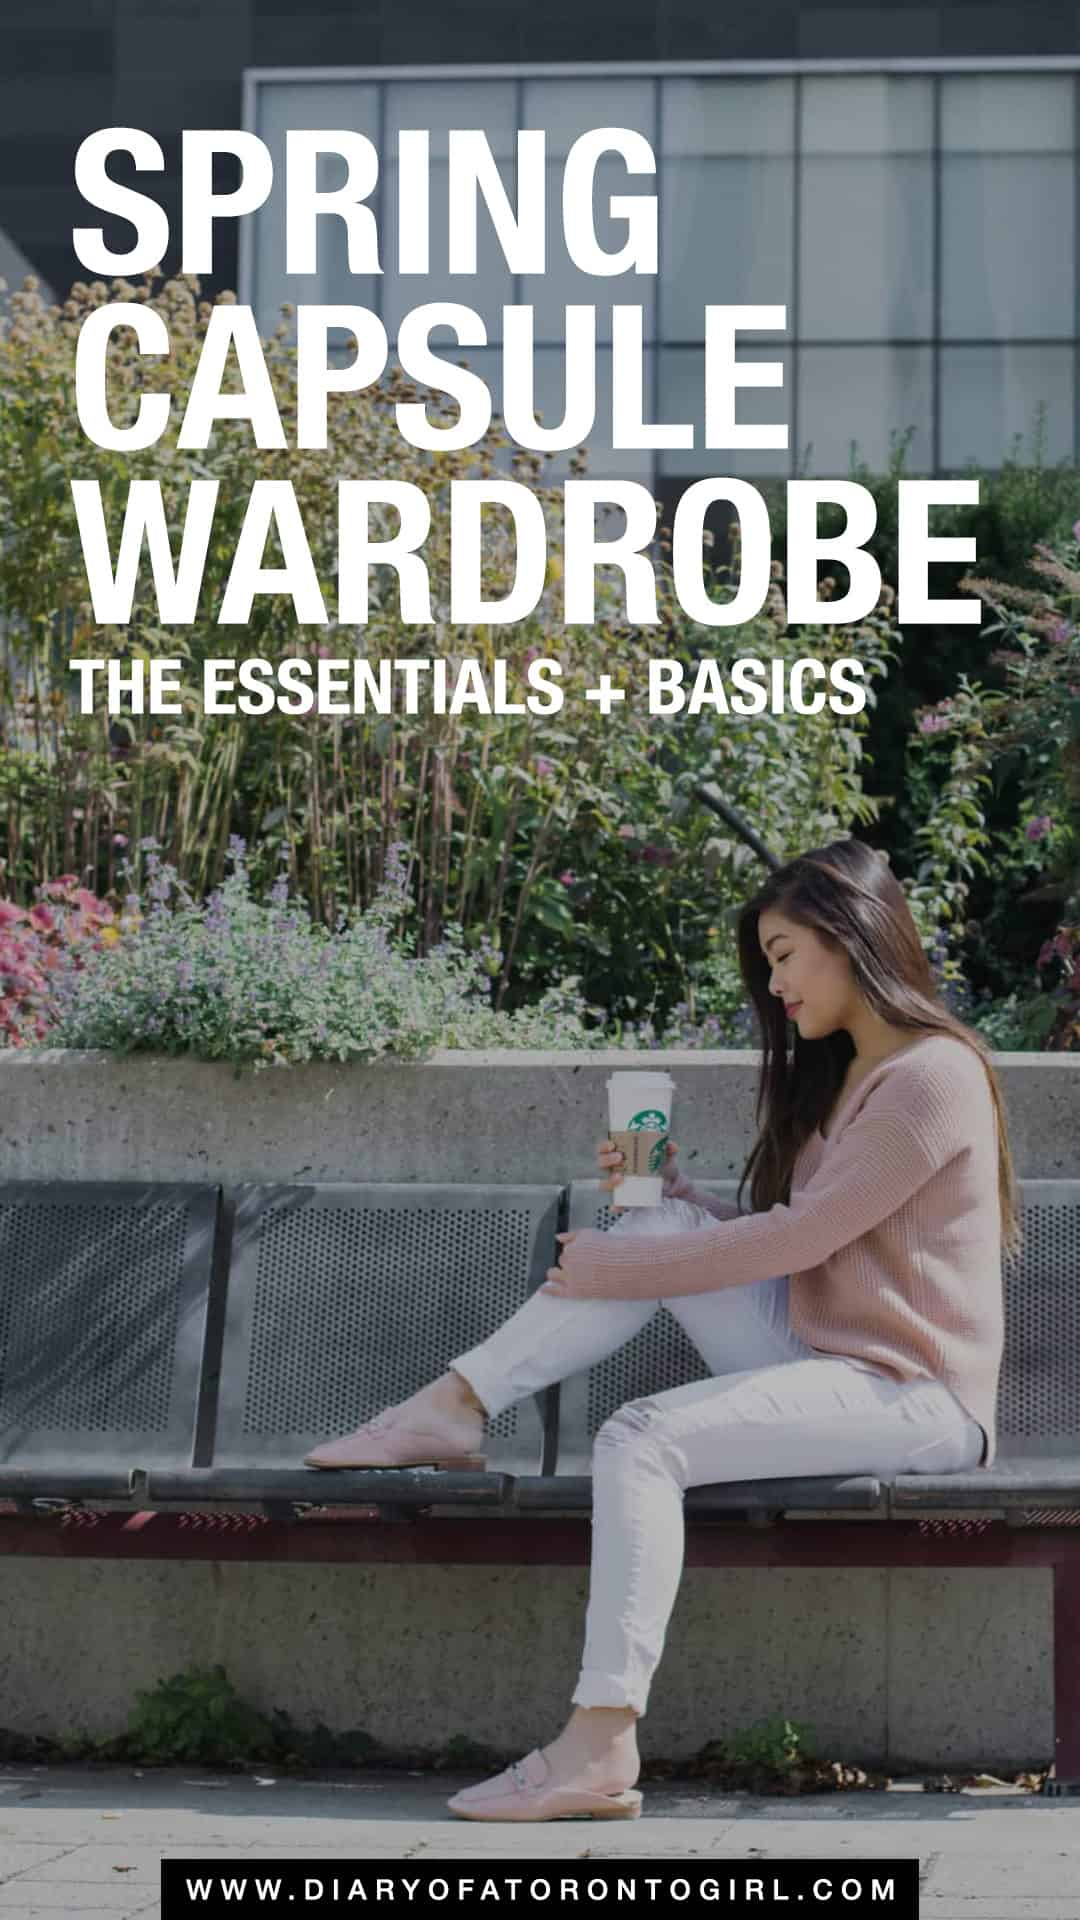 How to build the ultimate spring capsule wardrobe on a budget, so you can have timeless closet essentials to re-wear every single year.